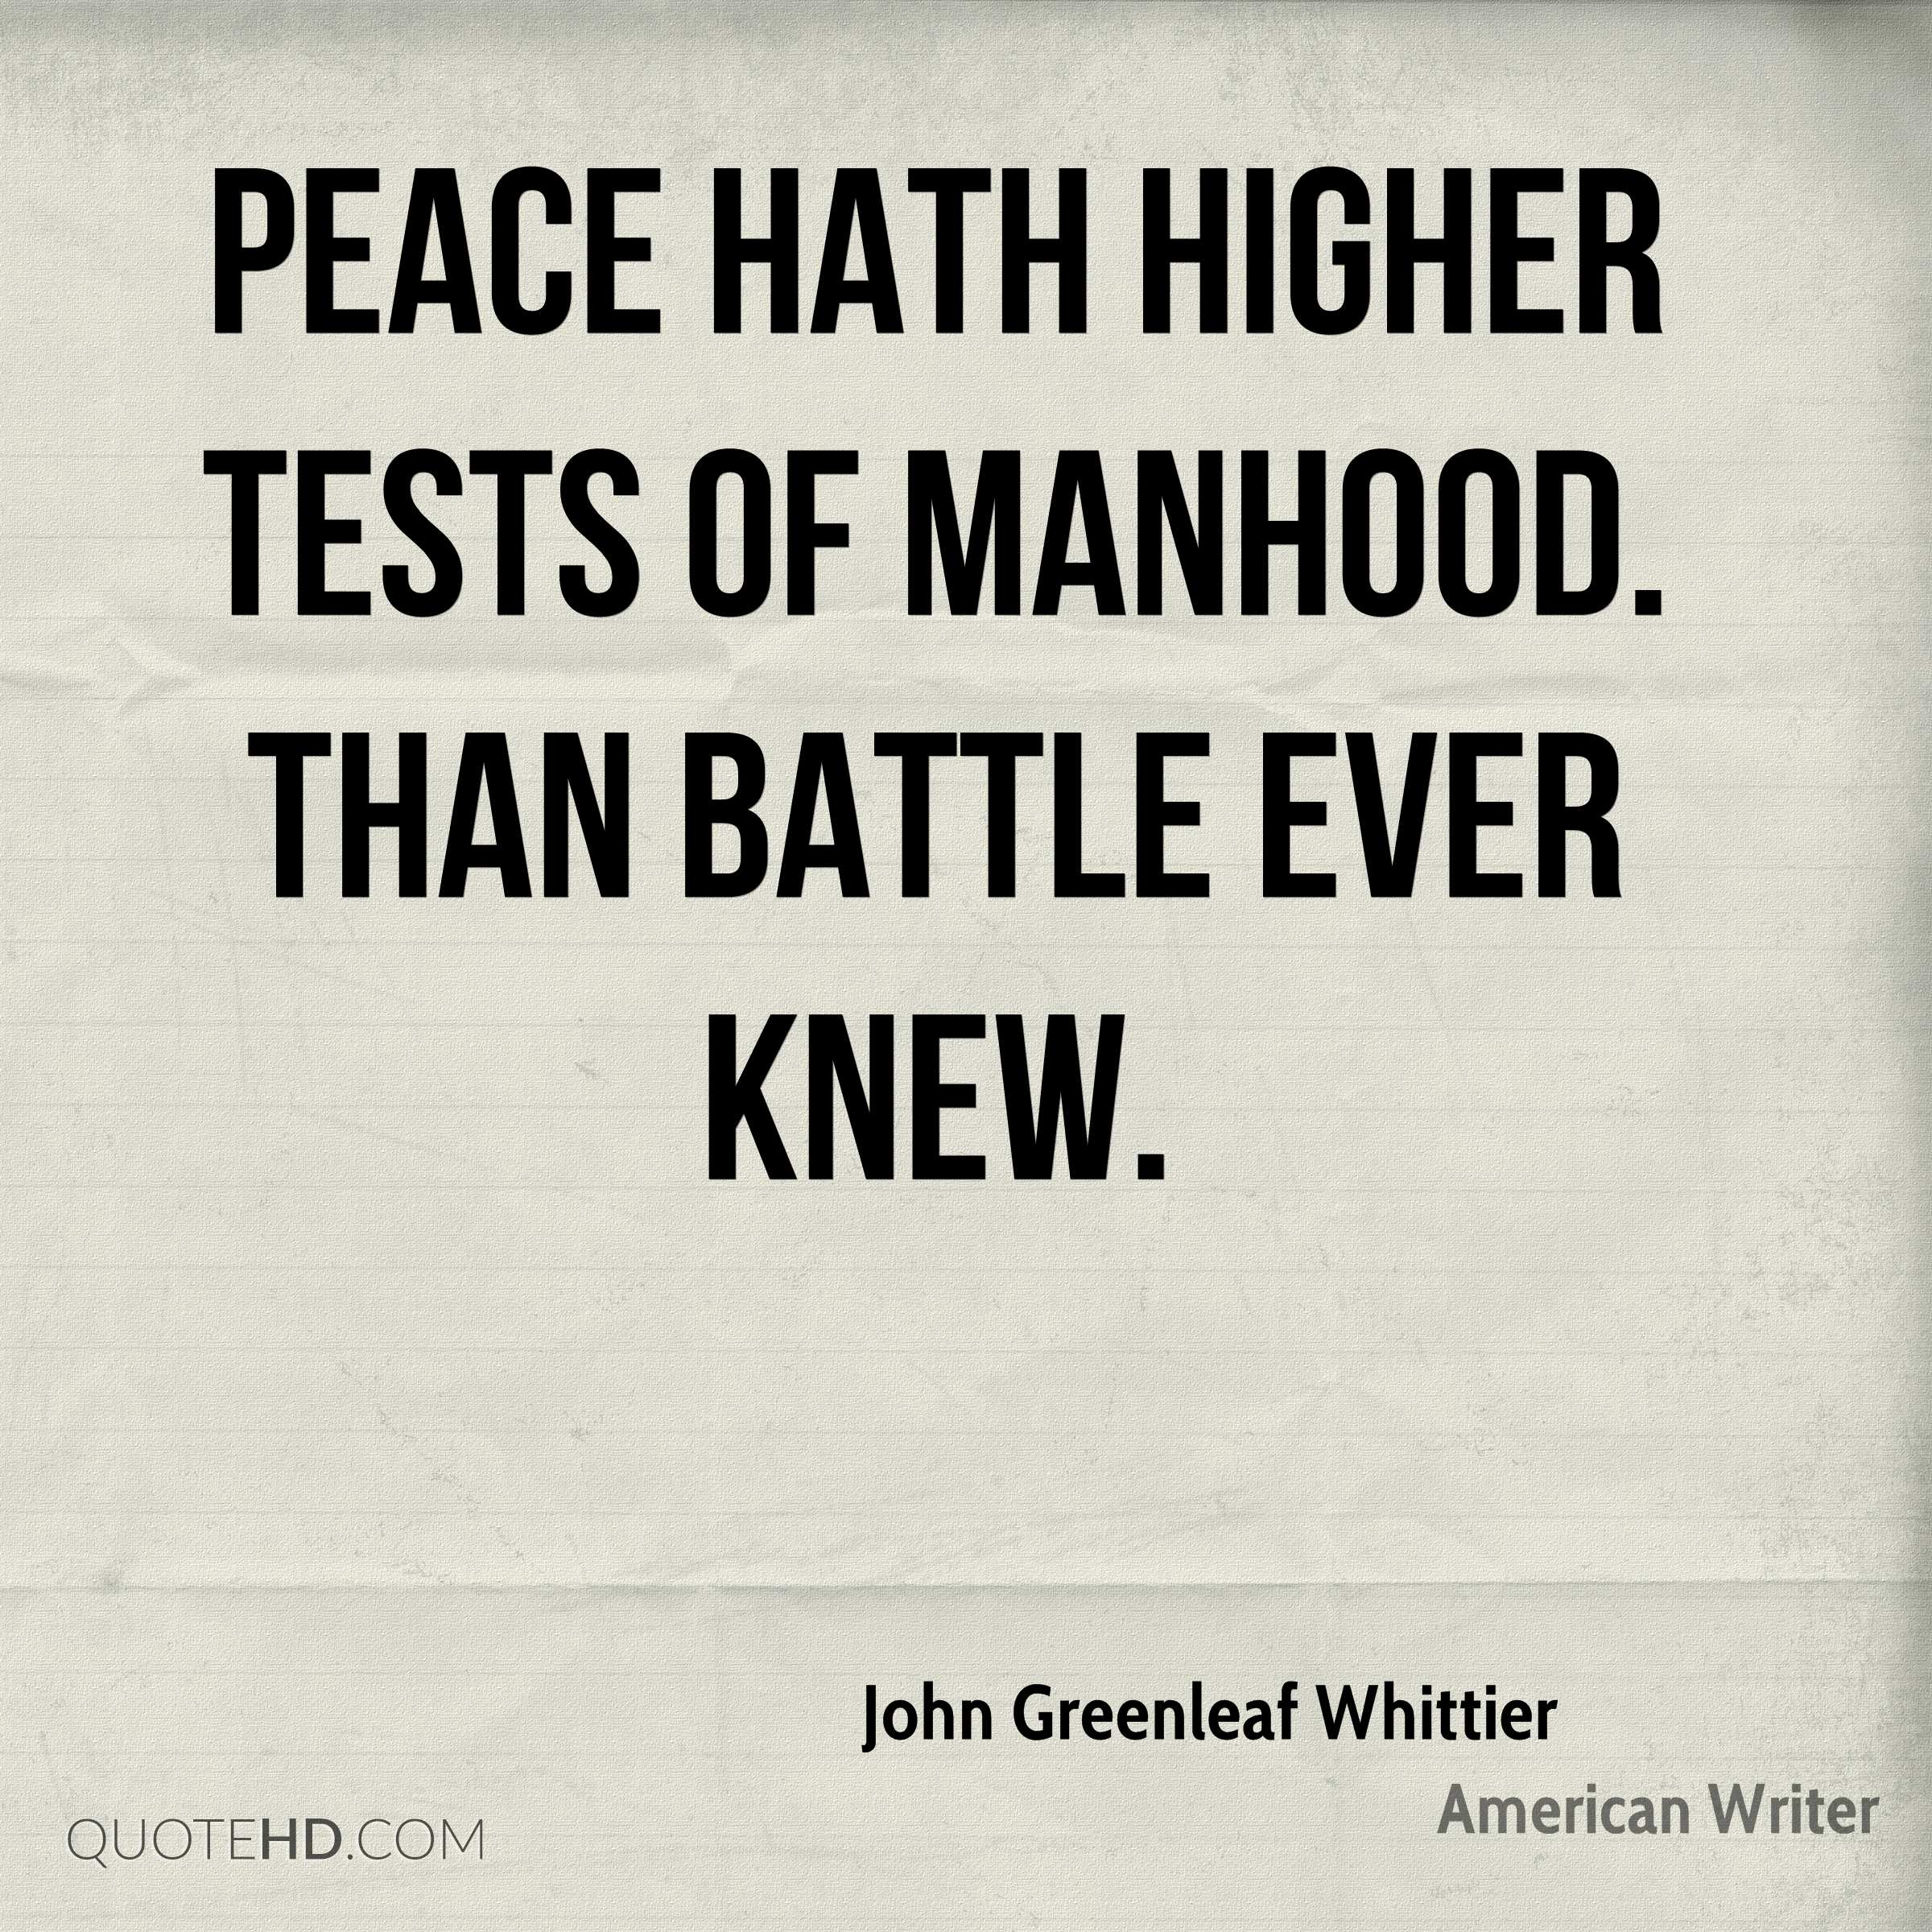 Peace hath higher tests of manhood. Than battle ever knew.